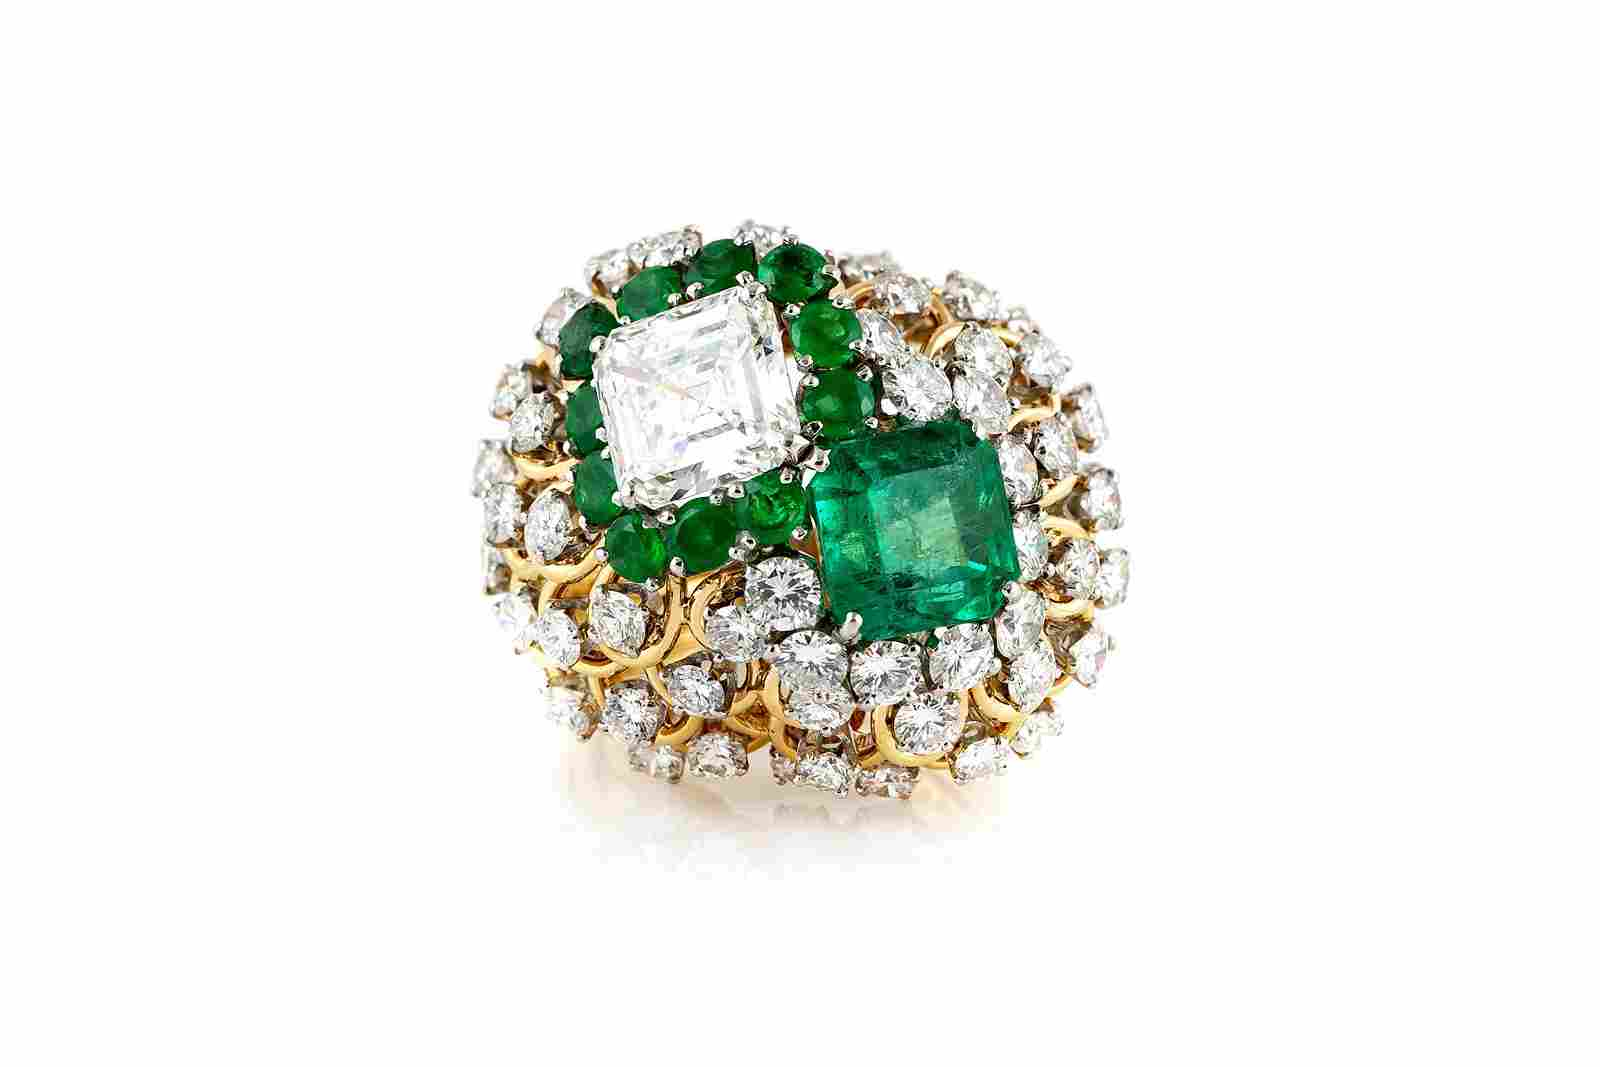 Authentic David Webb Cocktail Ring With Green Emerald